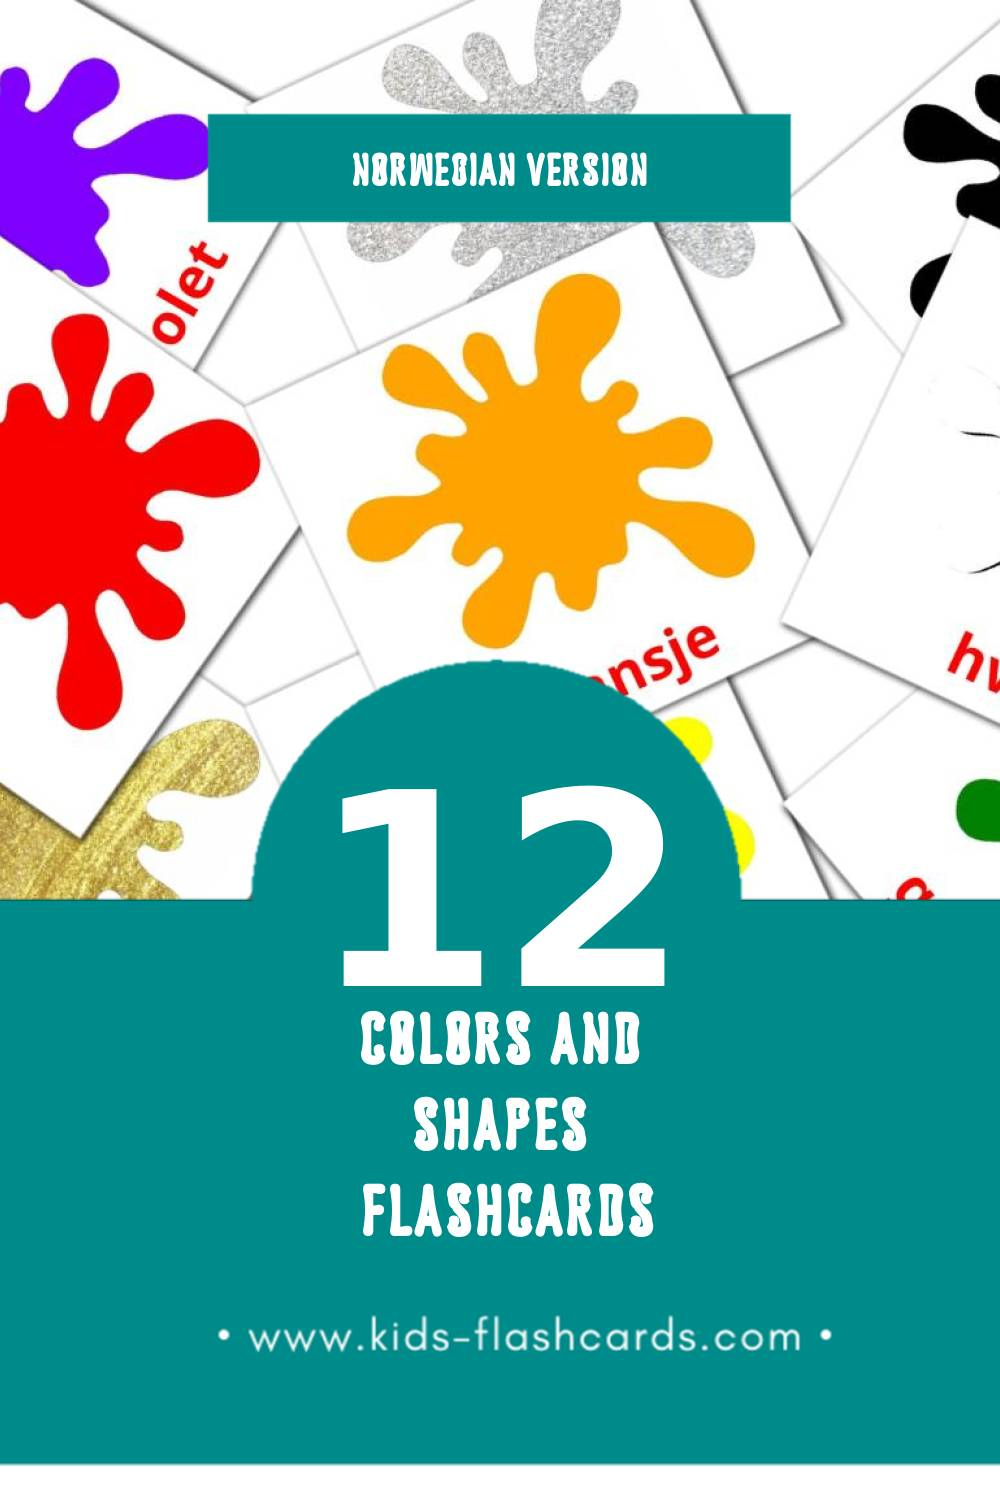 Visual norsk Flashcards for Toddlers (12 cards in Norwegian)